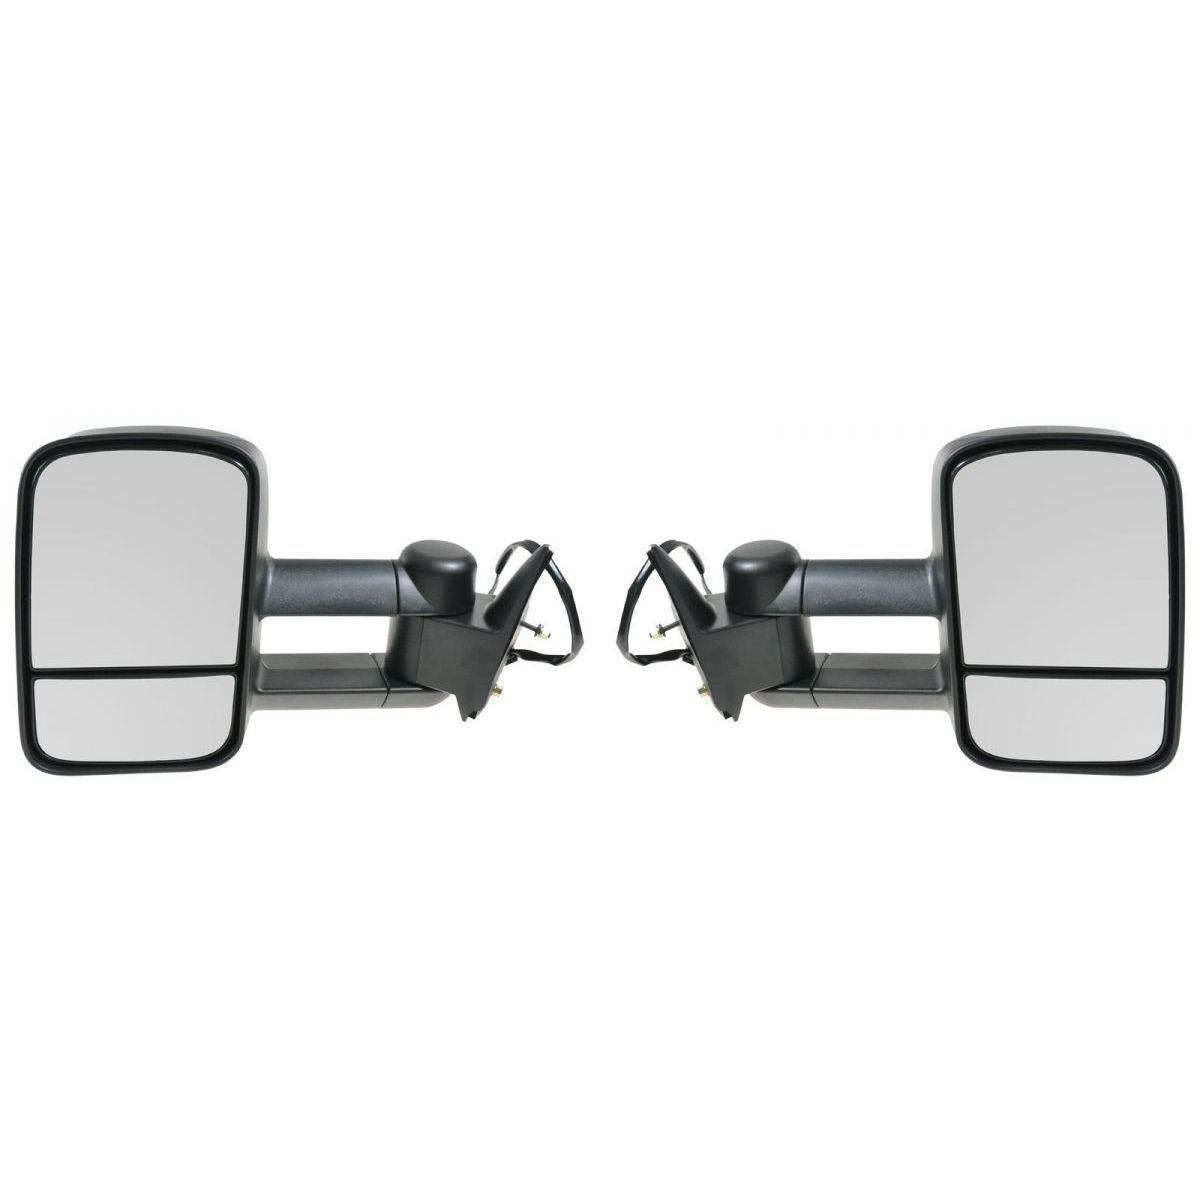 APA Chevrolet Gmc C K 1500 2500 3500 Truck 88 - 98 Tow Power Heated Mirror Pair Set by Auto Parts Avenue